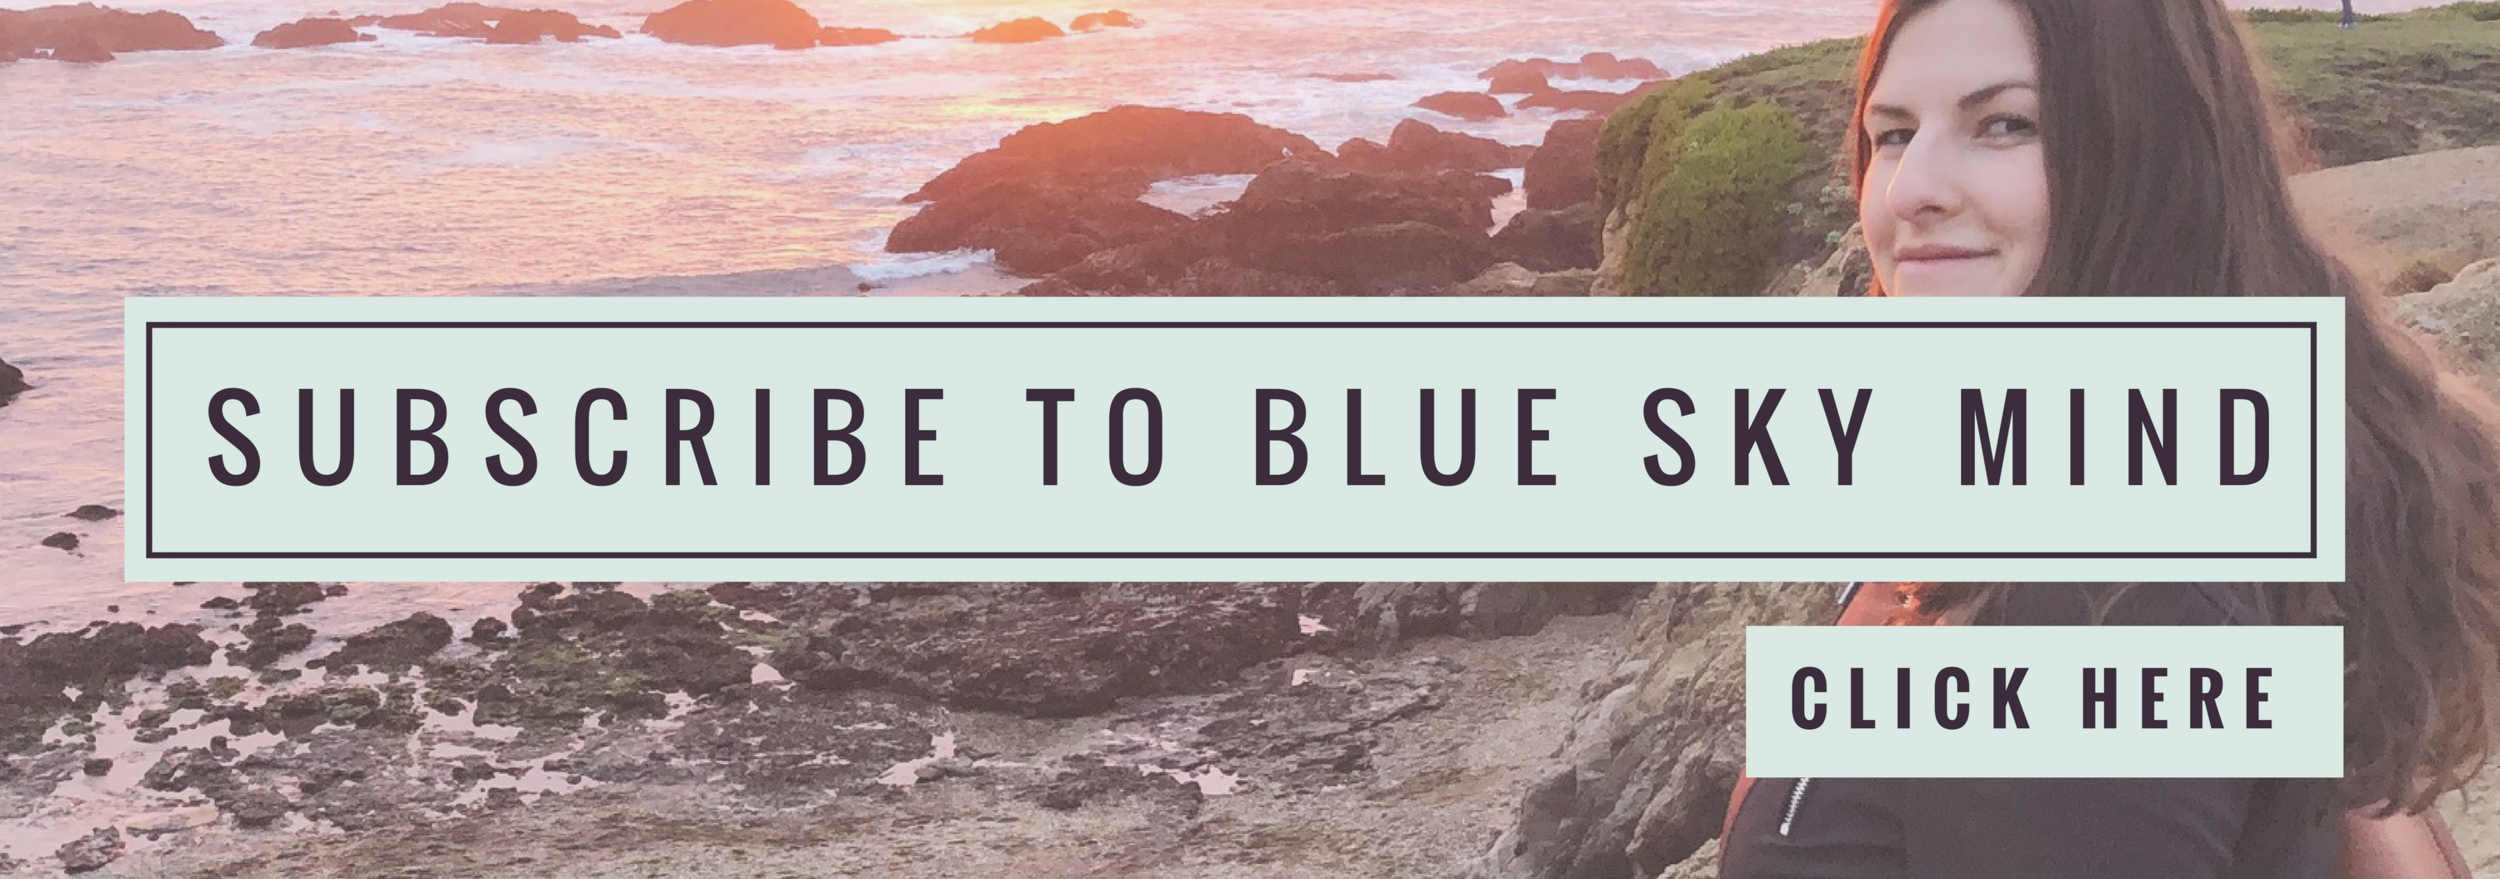 subscribe-to-blue-sky-mind-blog